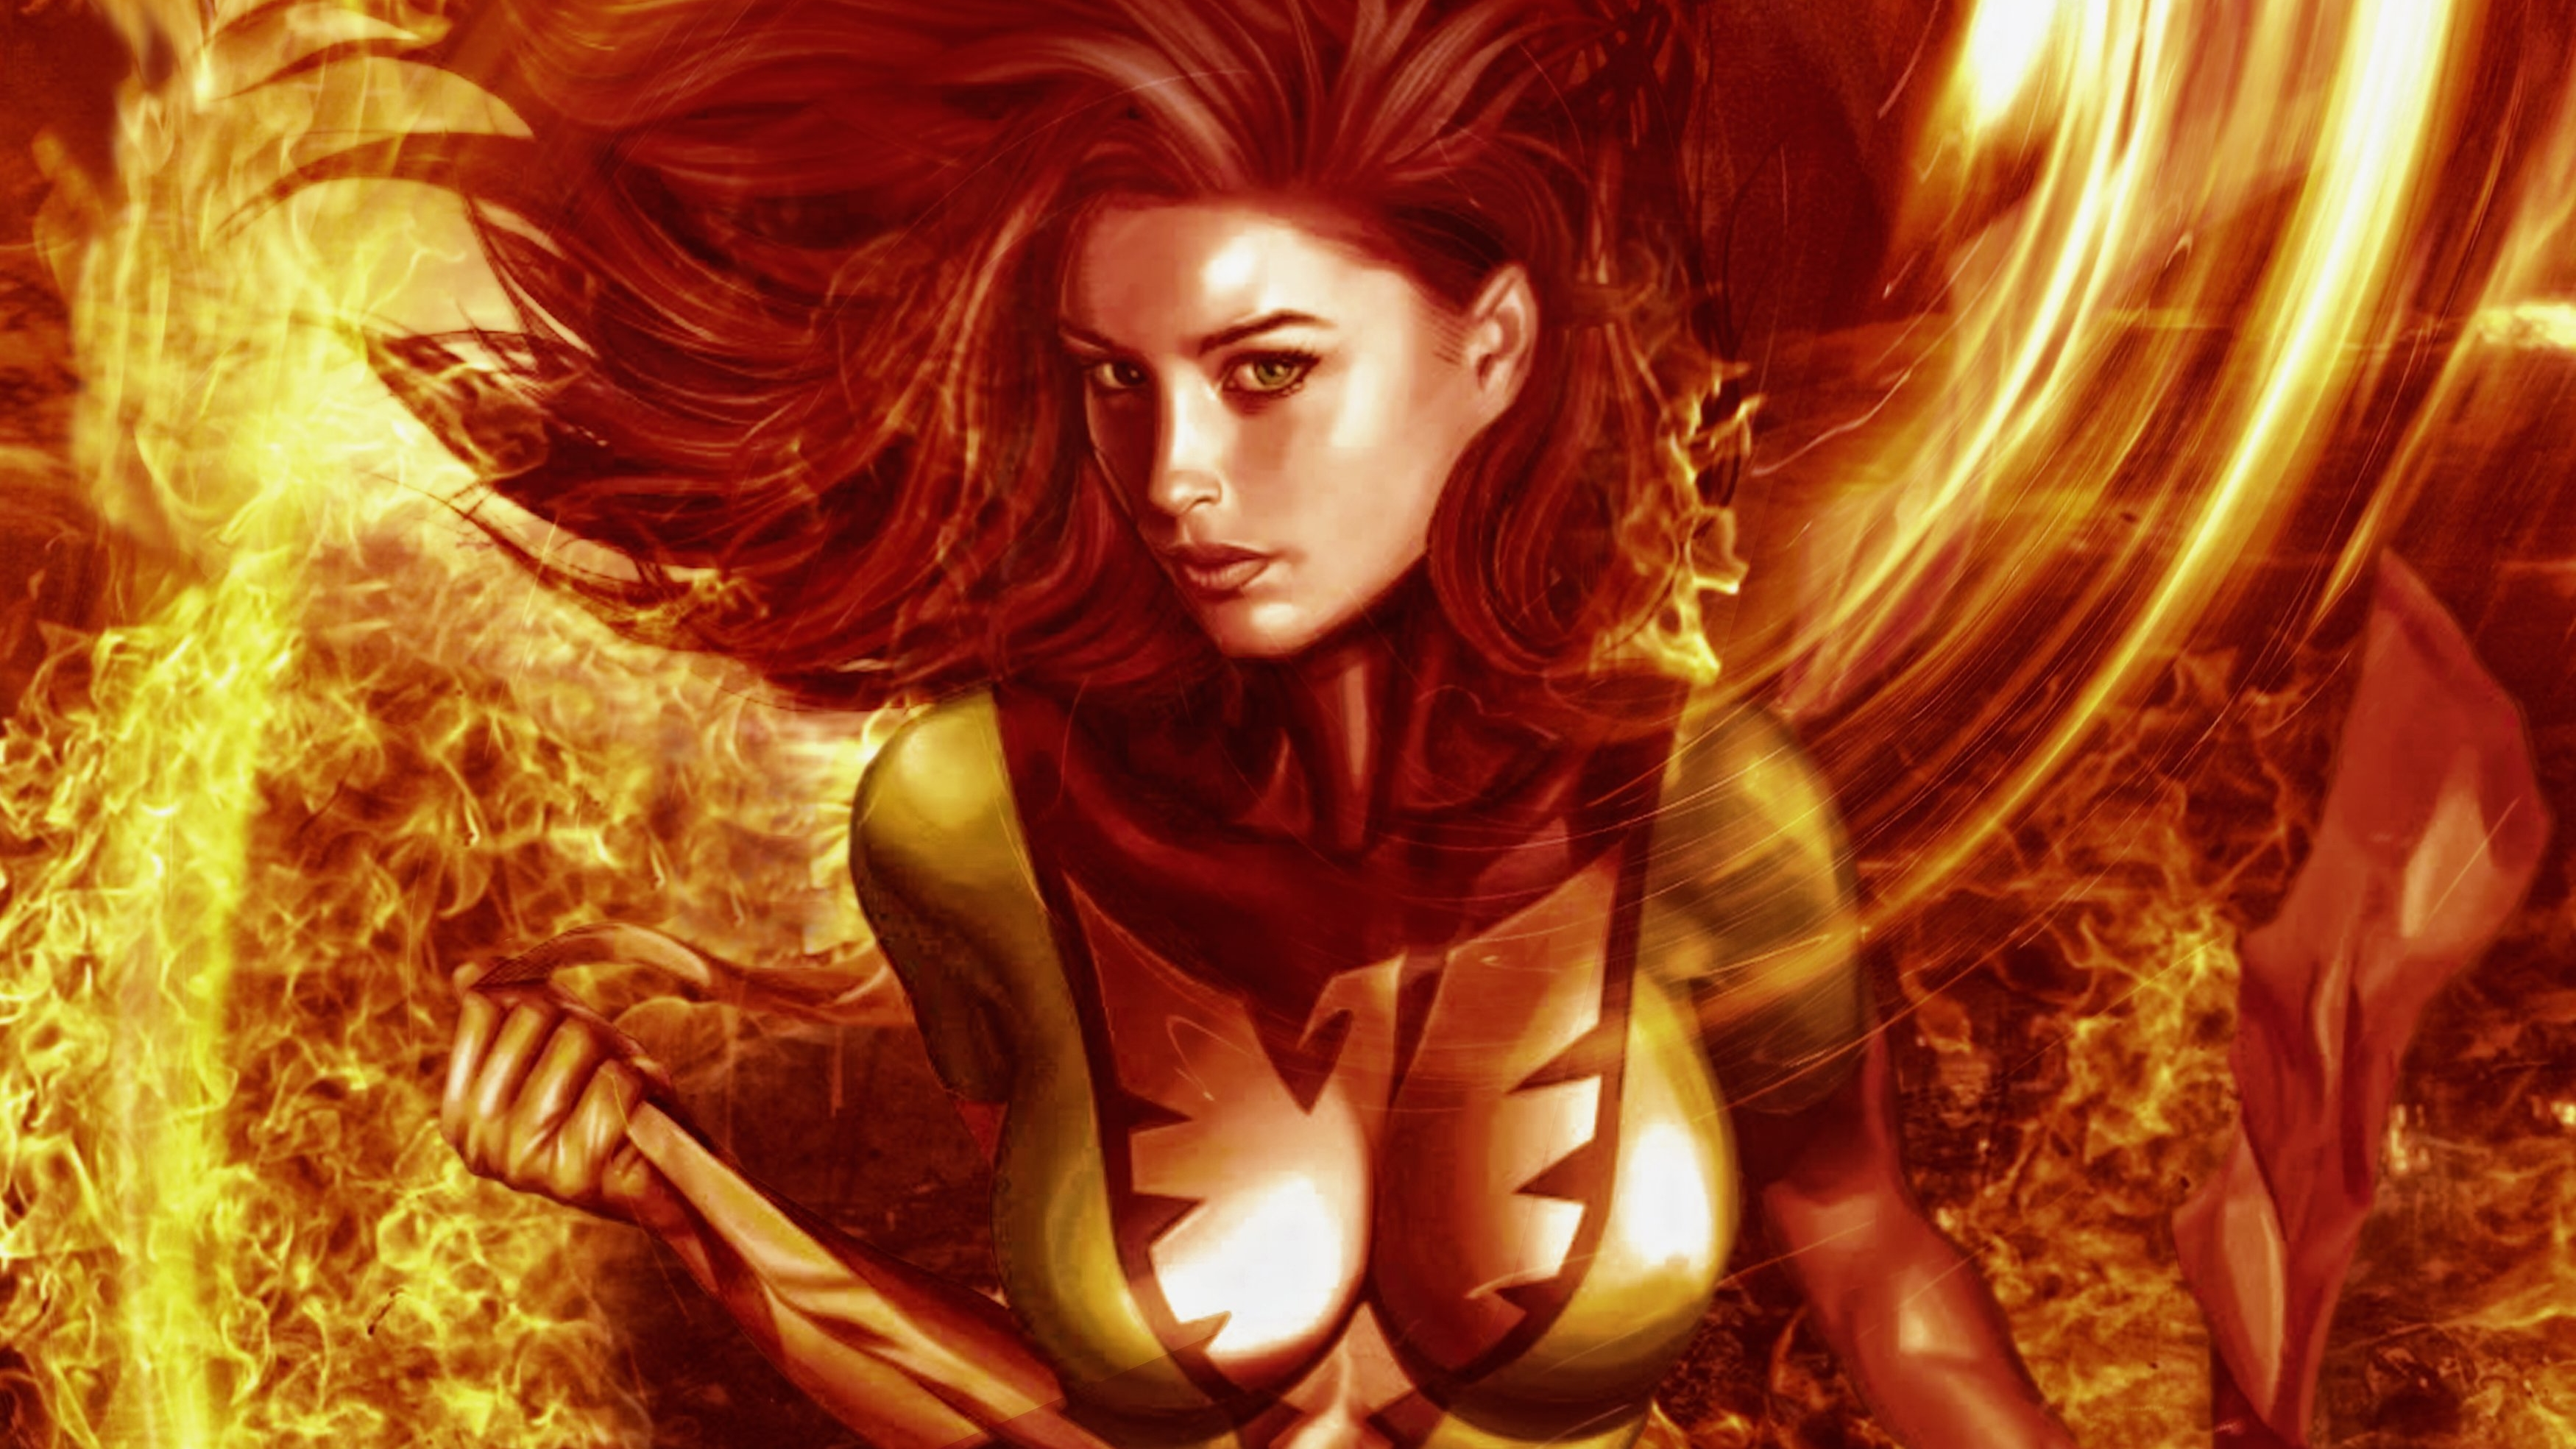 739 x men hd wallpapers backgrounds wallpaper abyss page 13 - Wallpaper abyss categories ...